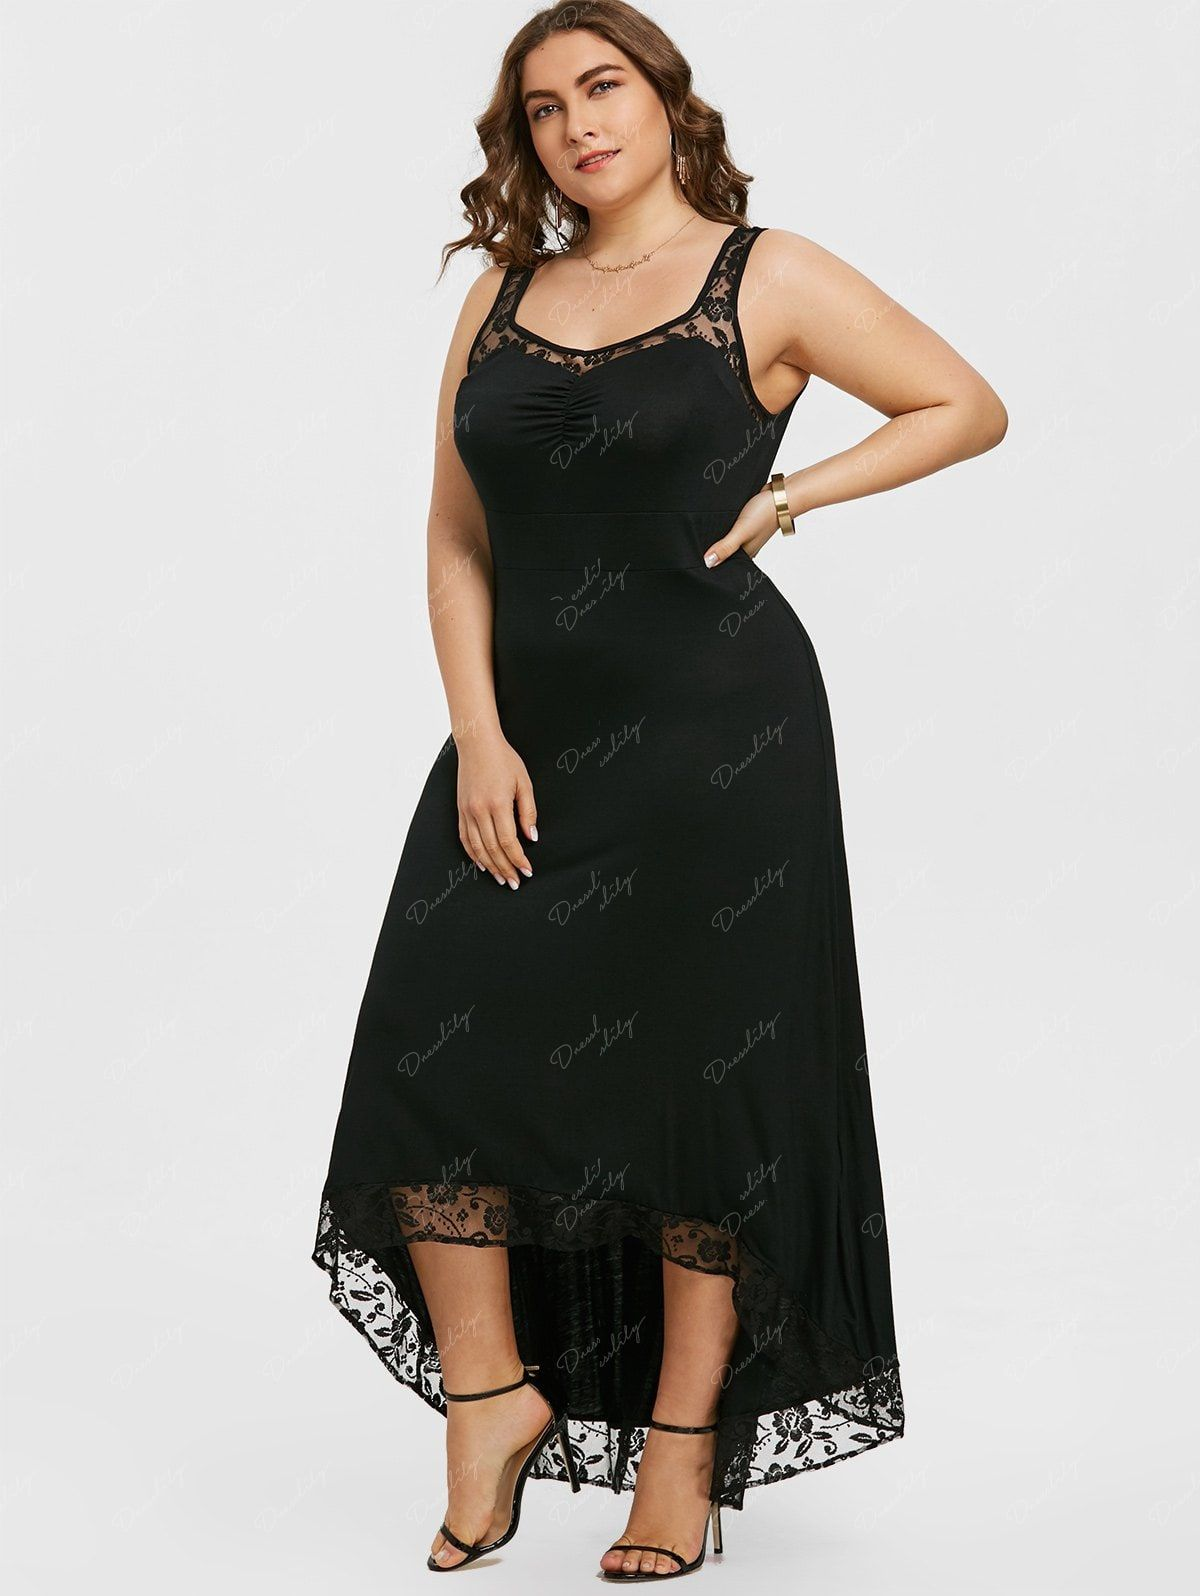 47c55b462c35 High Low Plus Size Party Maxi Dress -  fall dresses to wear to a wedding